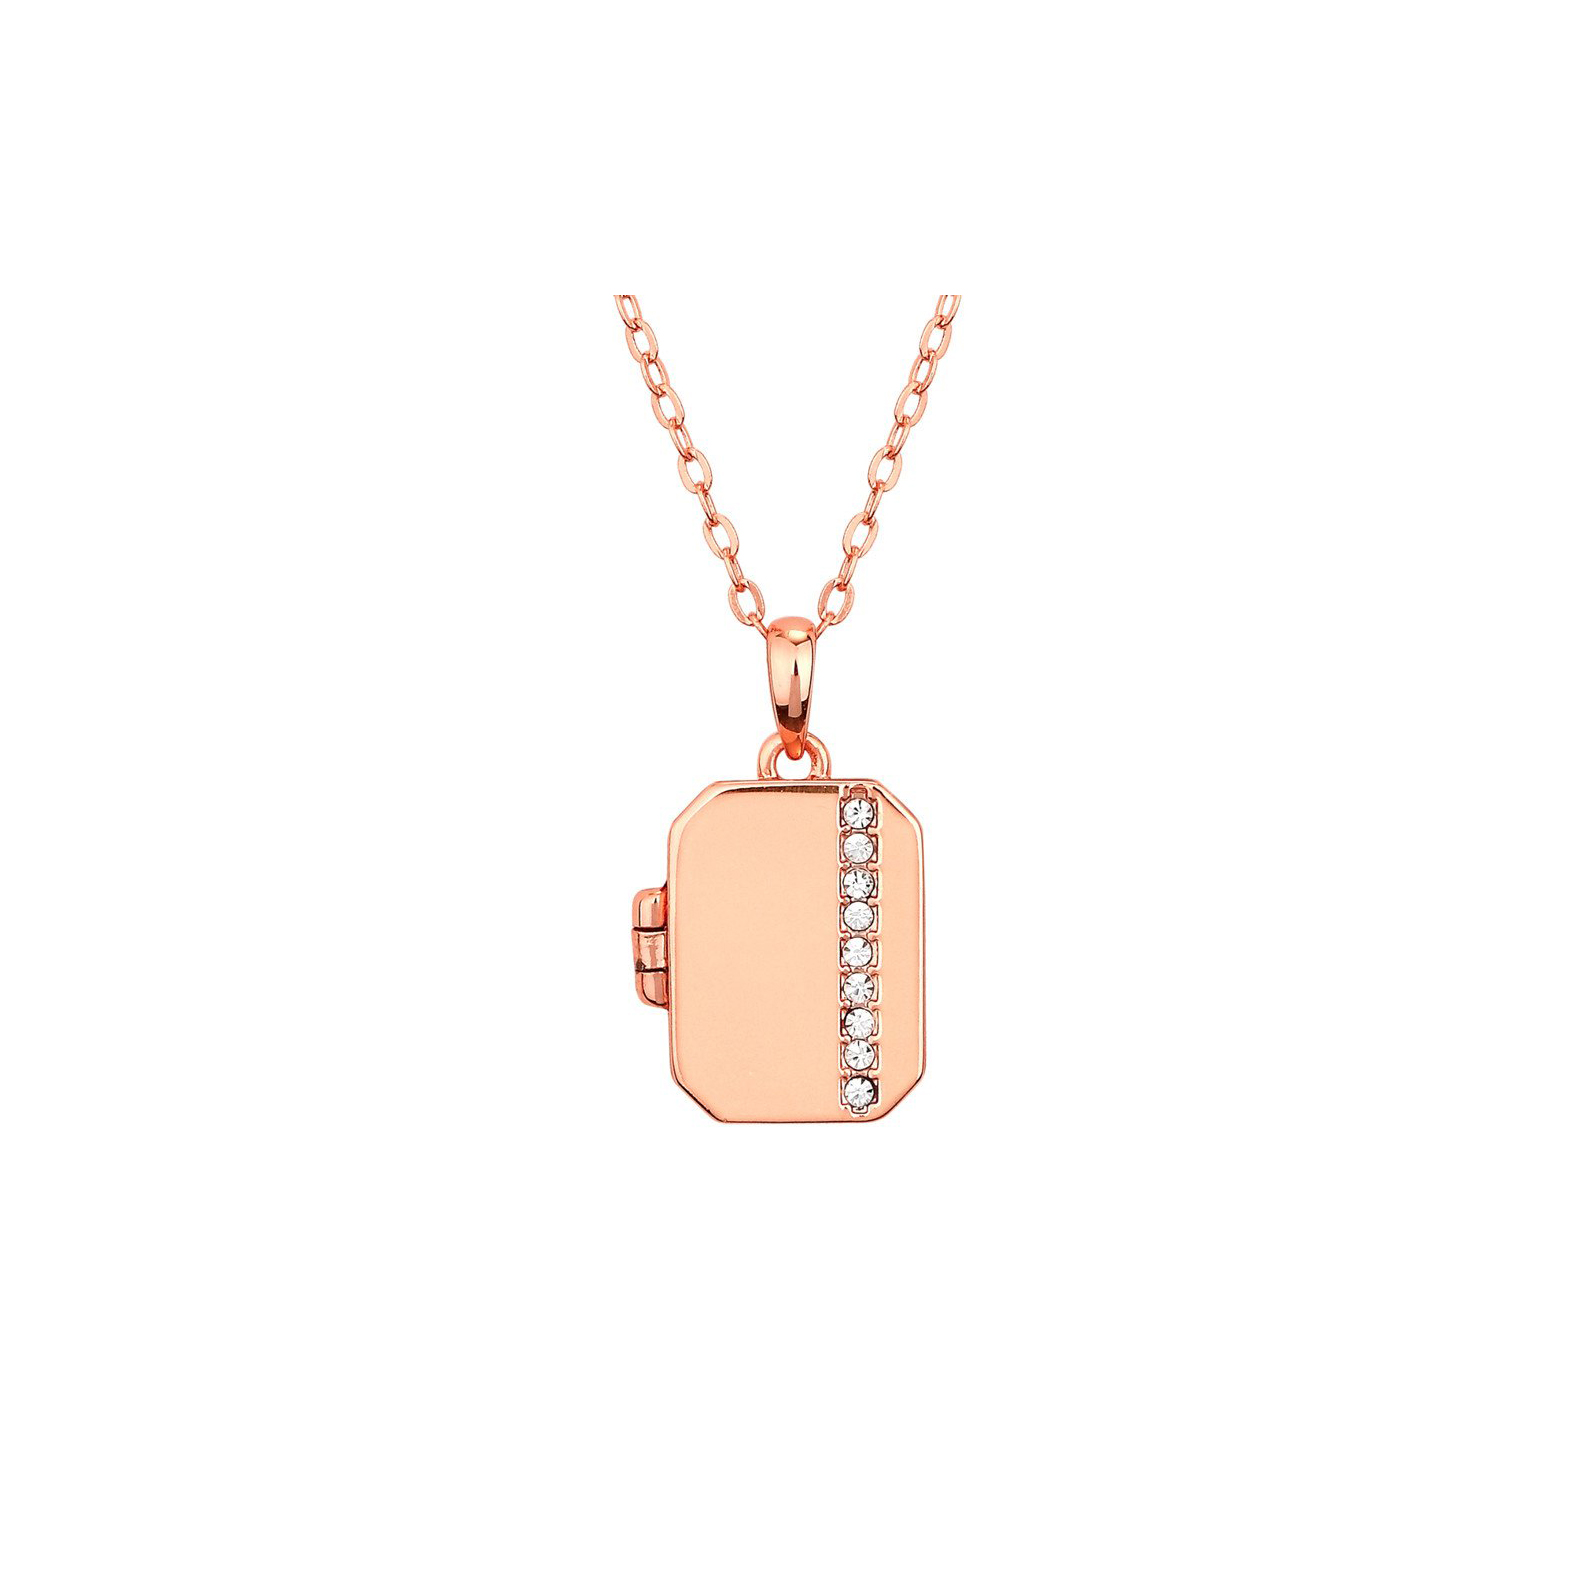 9d468862d59 Personalized Jewelry for Moms You Won t Find in a Store